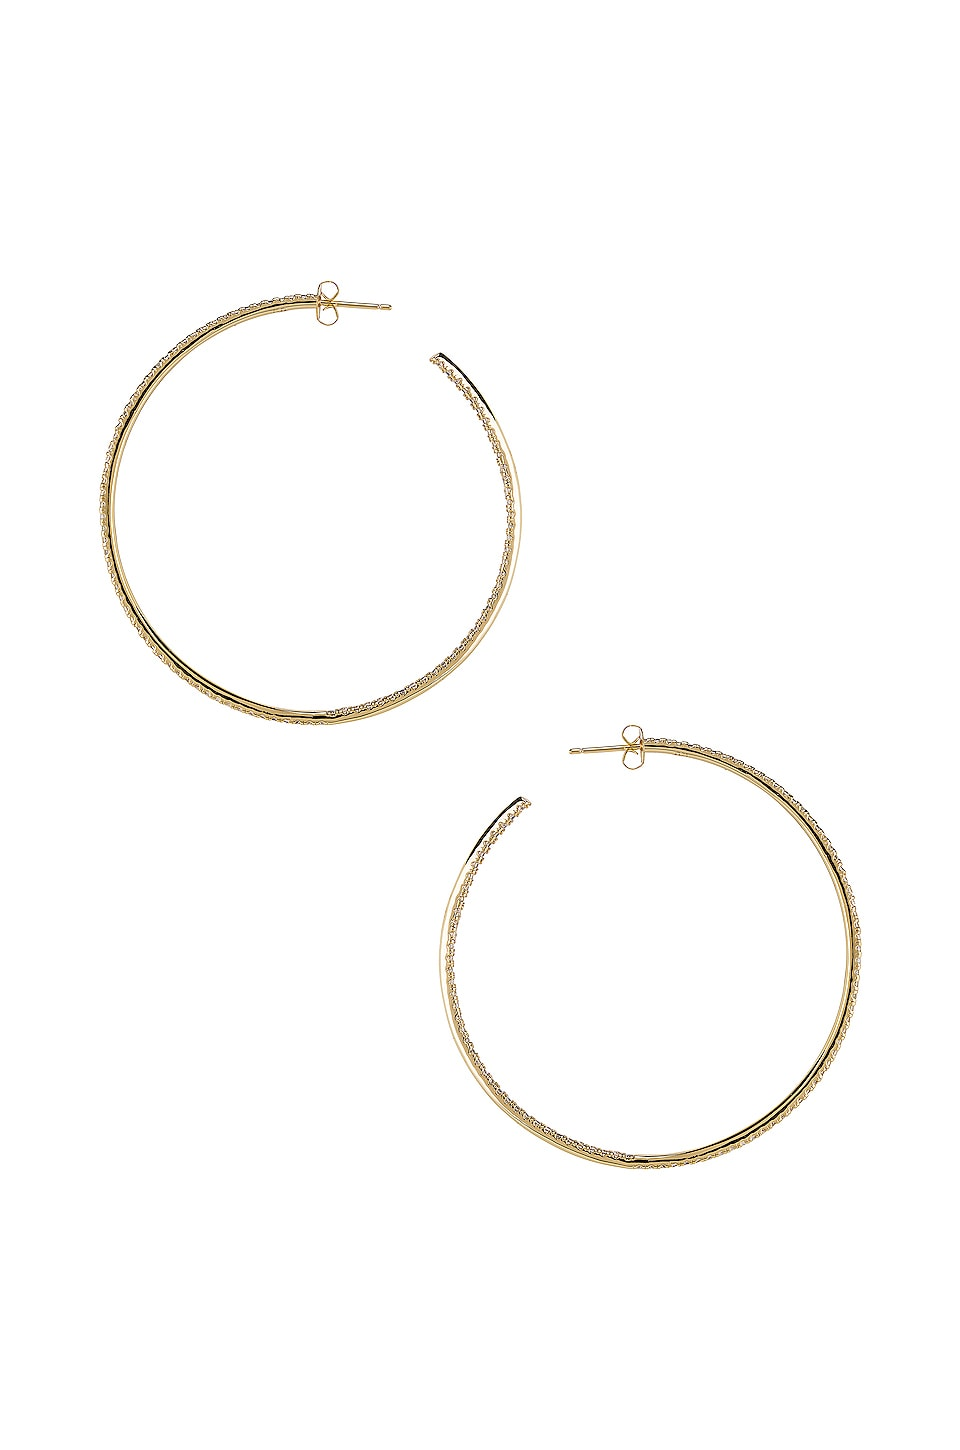 joolz by Martha Calvo Thin Pave Hoop Earrings in Gold